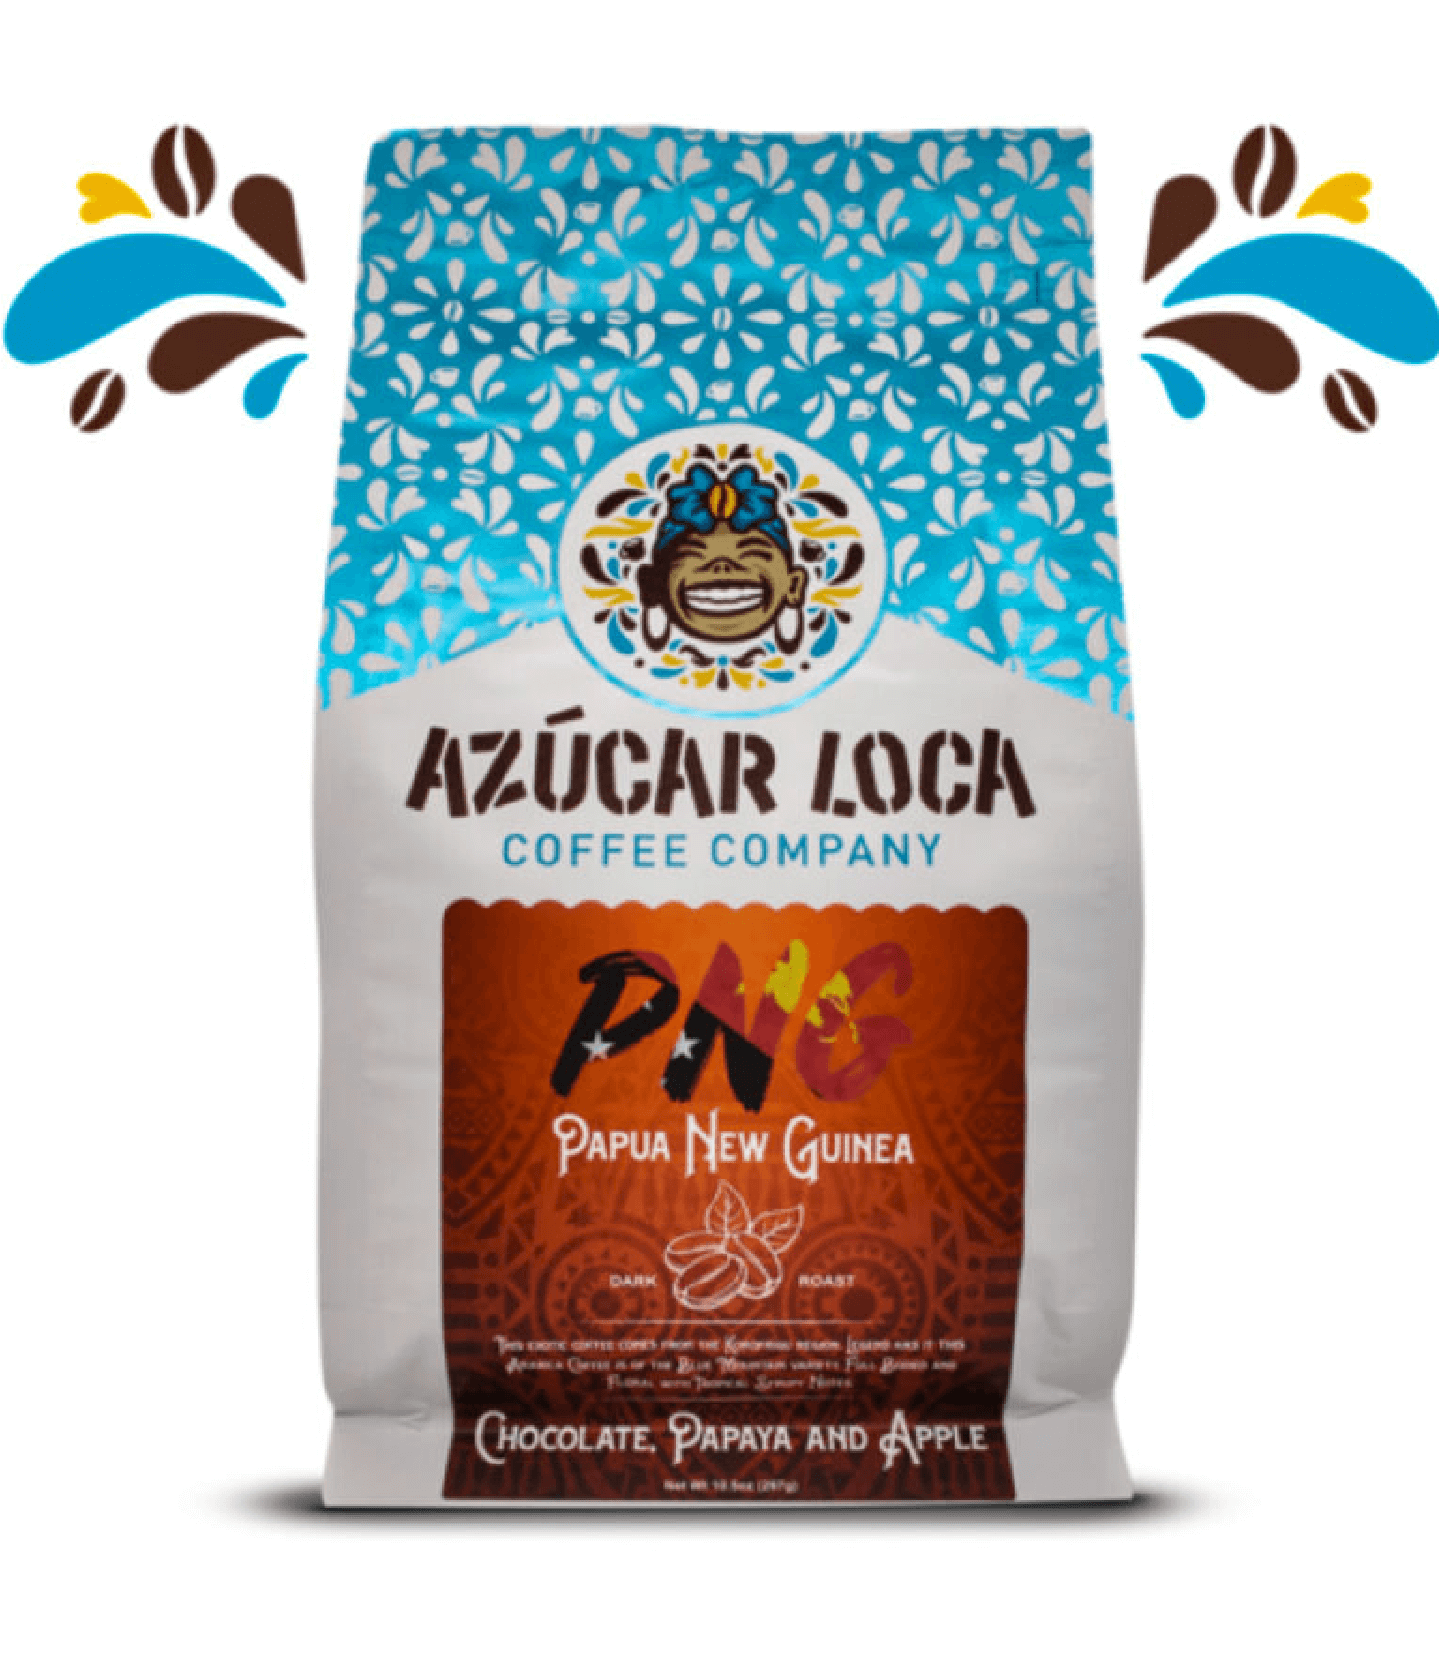 Papa New Guinea (PNG) from Azucar Loca Coffee Company